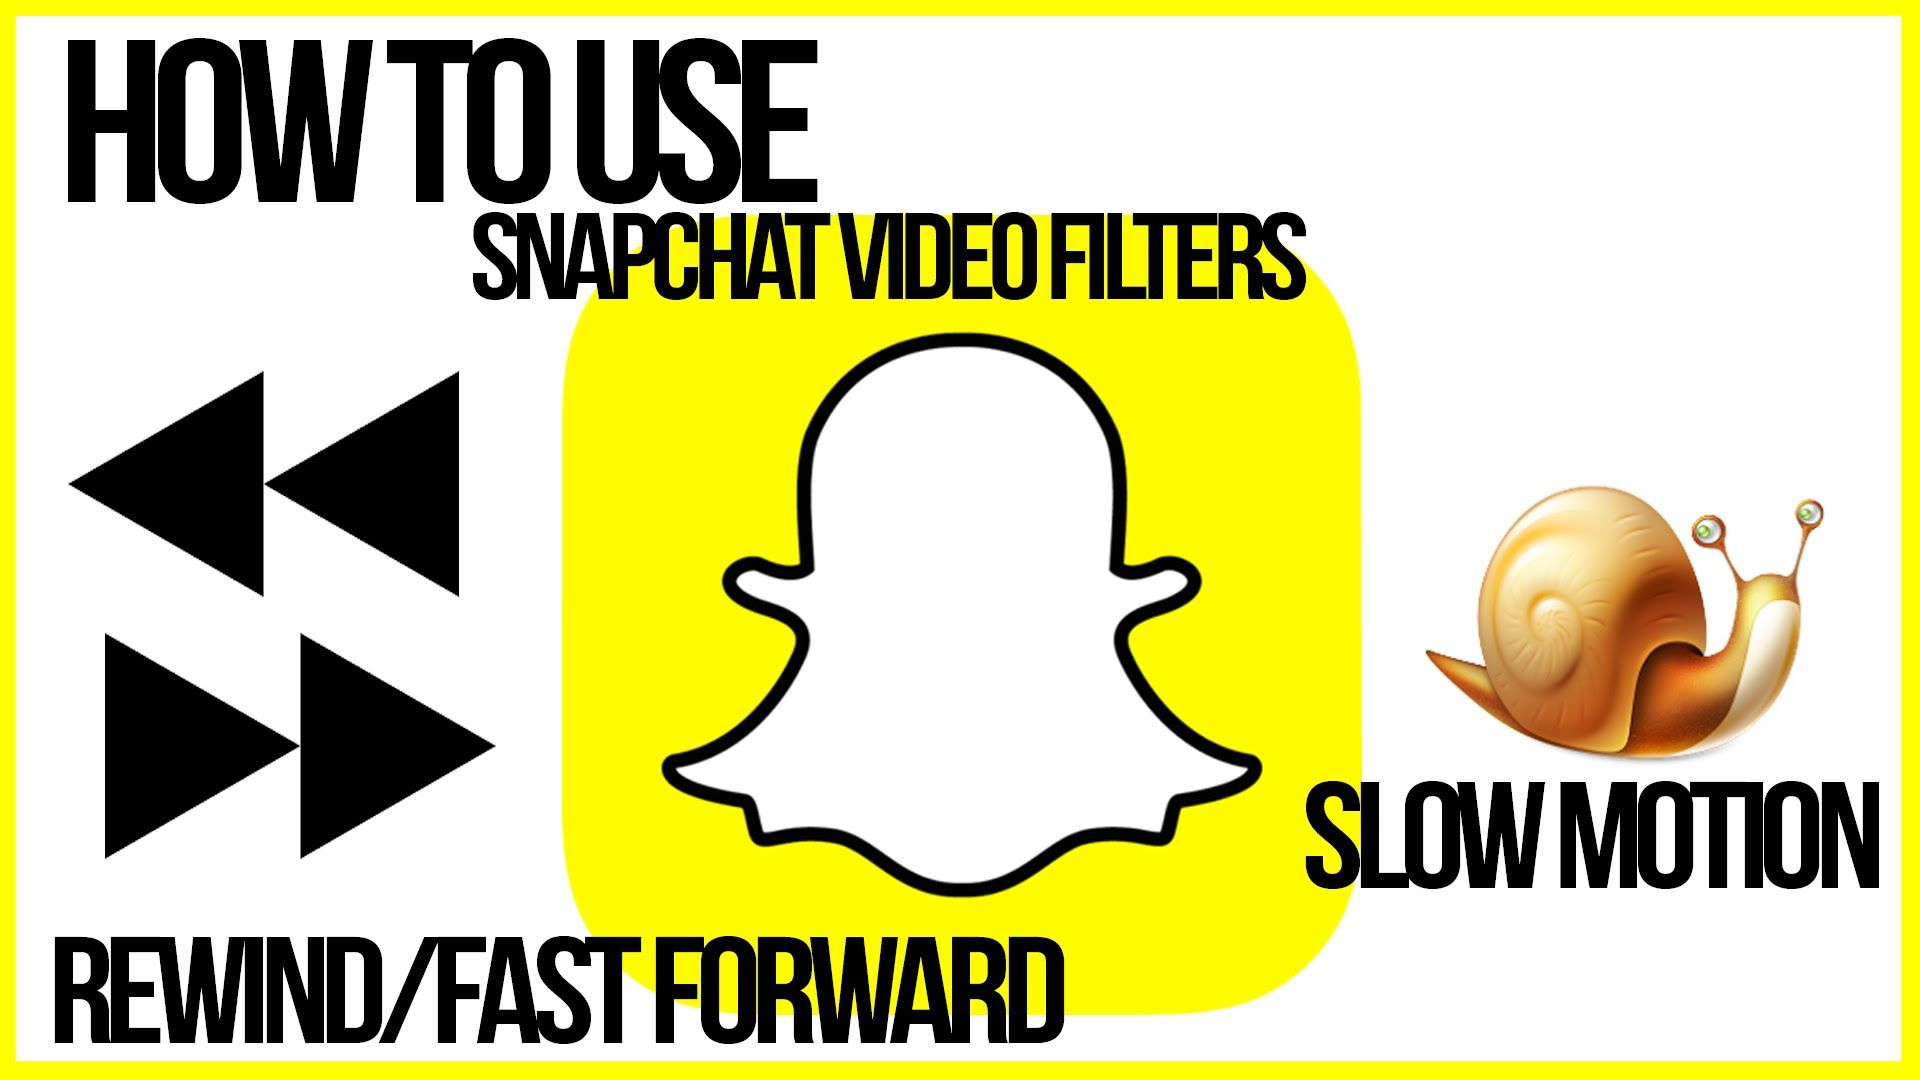 How To Use Snapchat Video Filters Reverse Fast Forward Slow Mo Snapchat Tutorial Snapchat Video Snapchat Video Filters Technology Tutorials